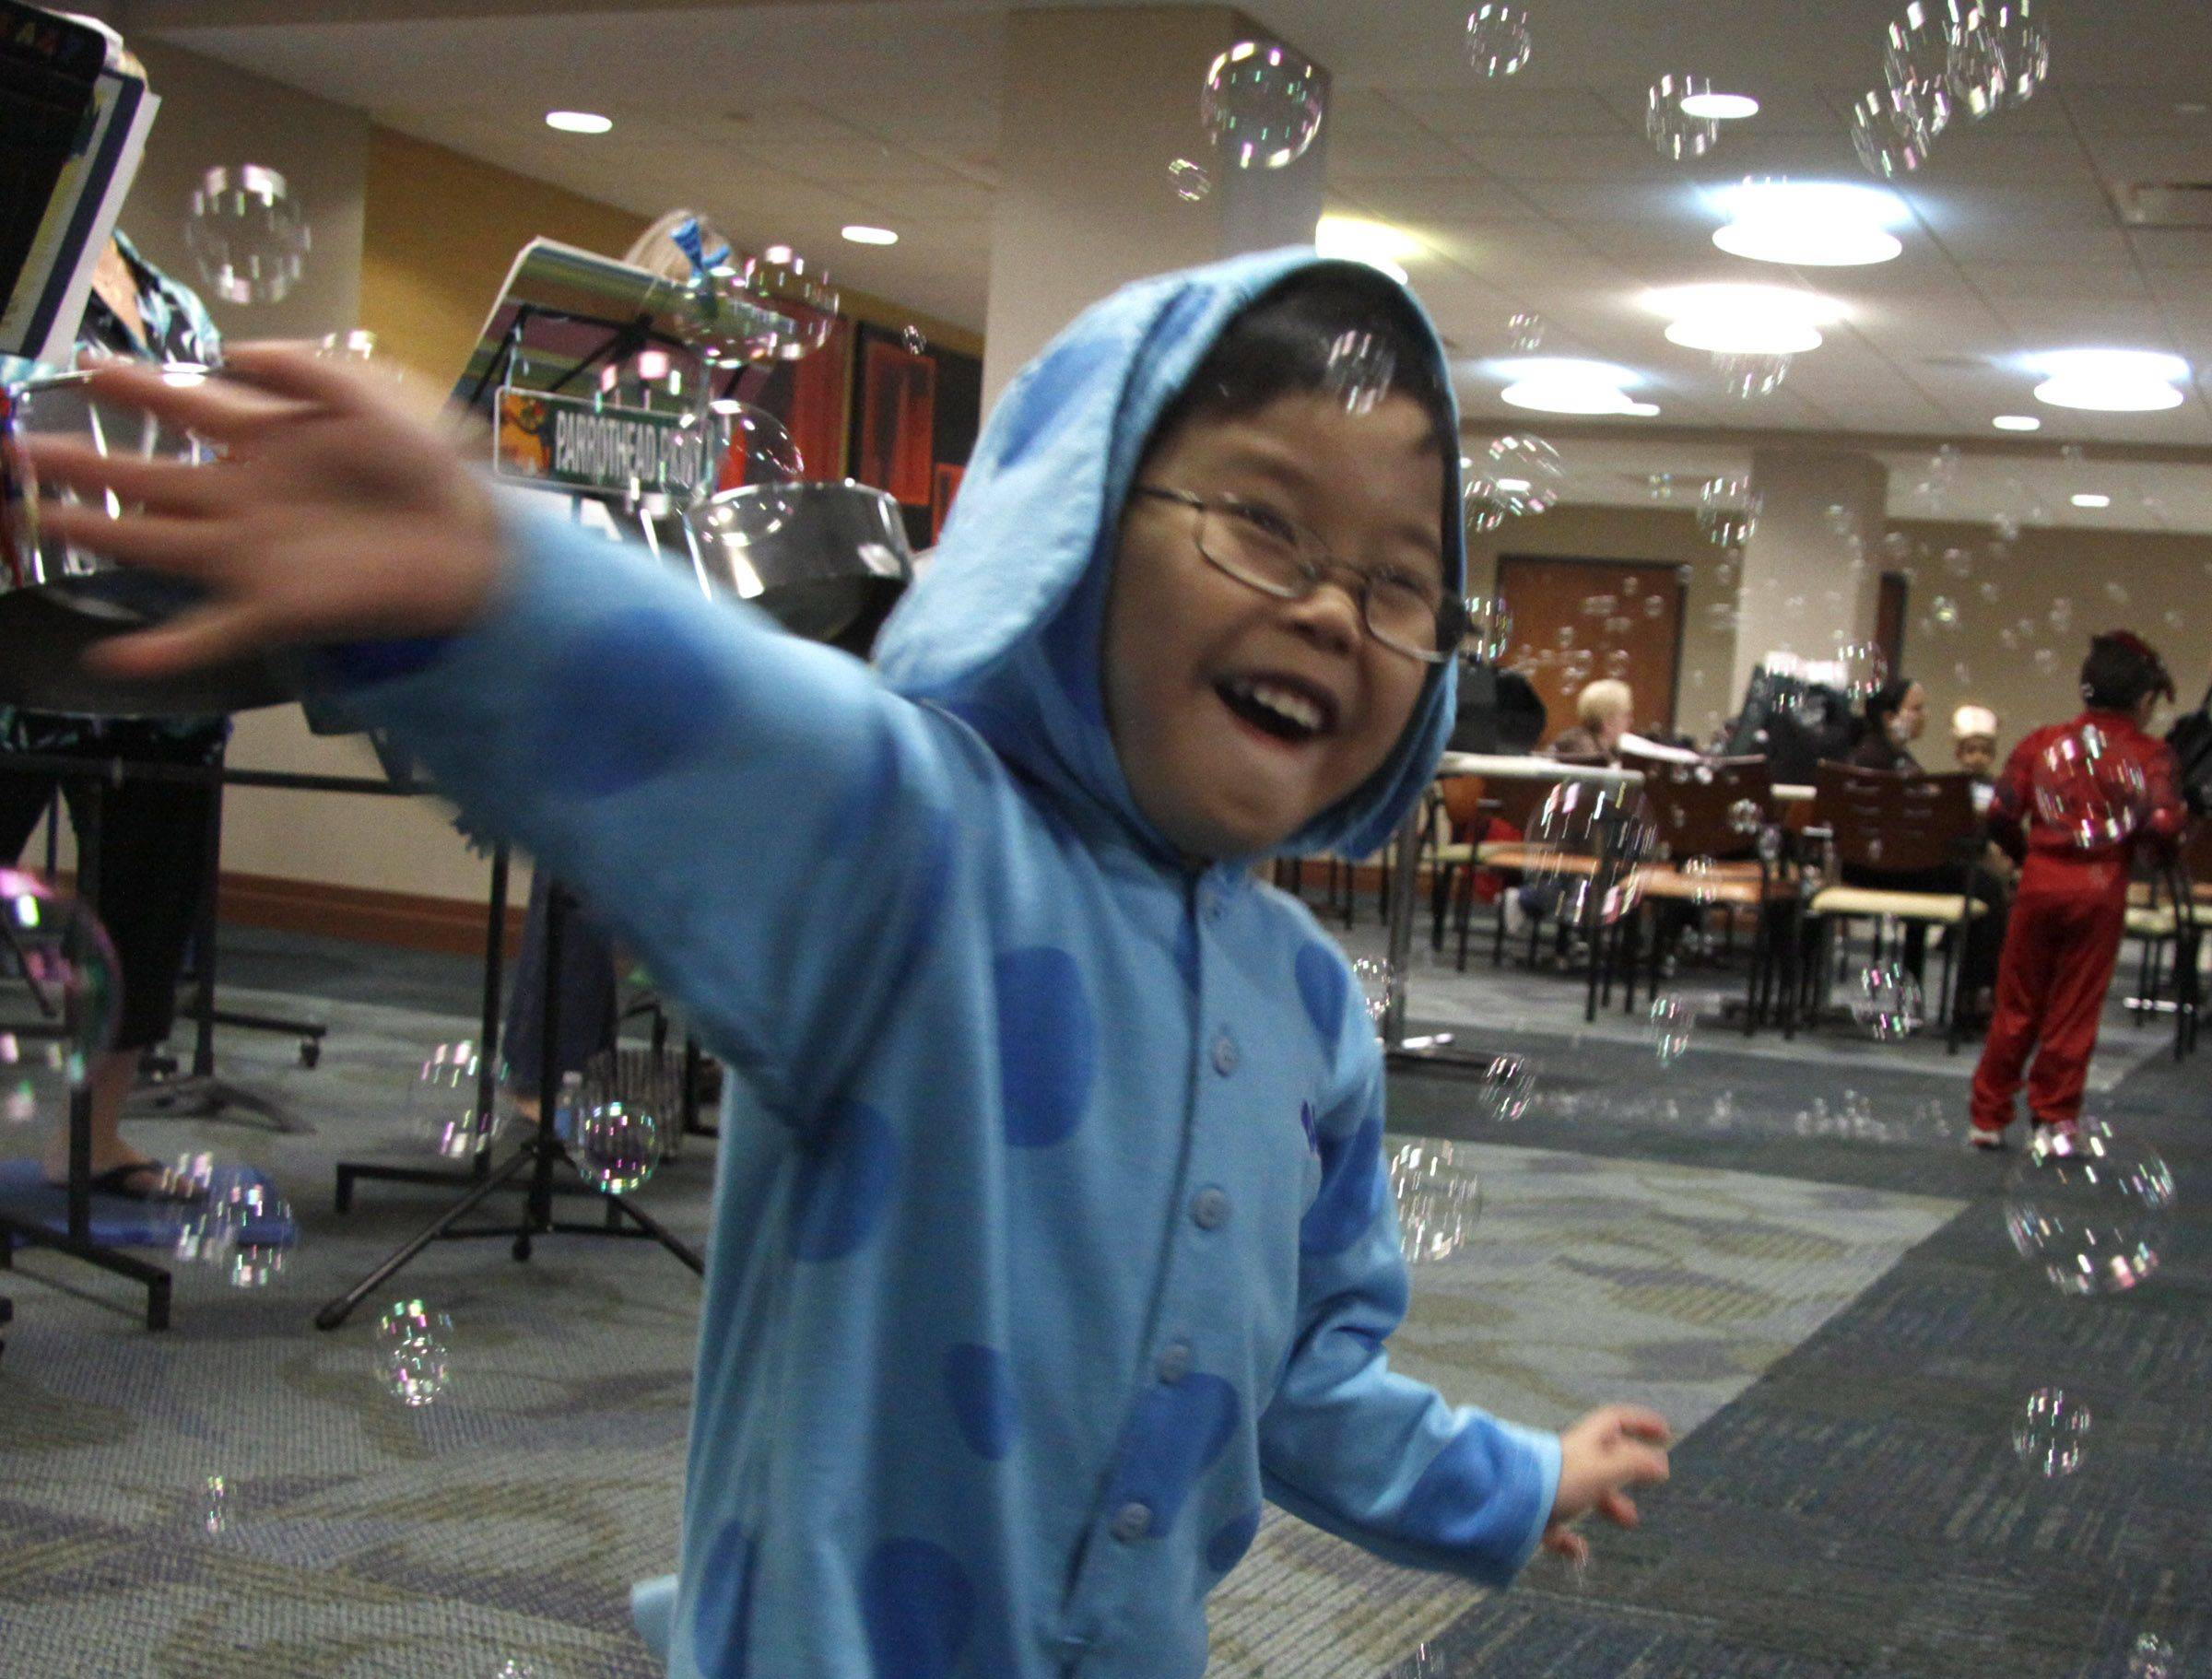 James Kaphengst, 4, dances in the bubbles at the Central DuPage Hospital's 24th annual reunion of neonatal intensive care unit patients and their families. Kaphengst was only 34 weeks along when his mother, Stephanie who is also a nurse at Central DuPage Hospital, gave birth.